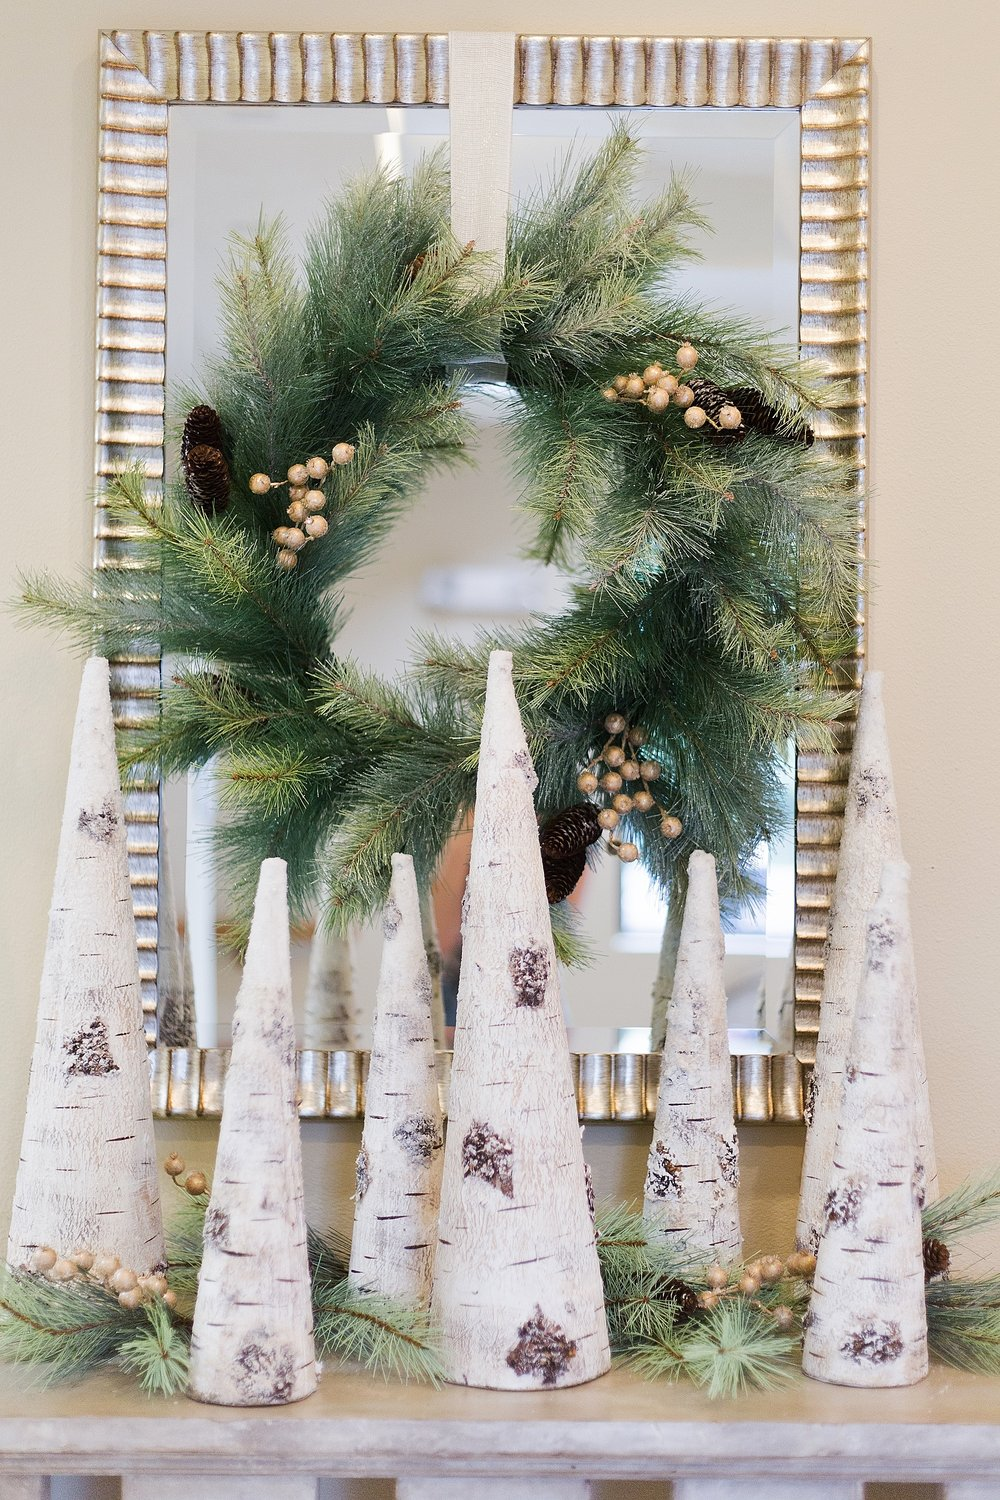 Woodlands Christmas decor on console from At Home decor store